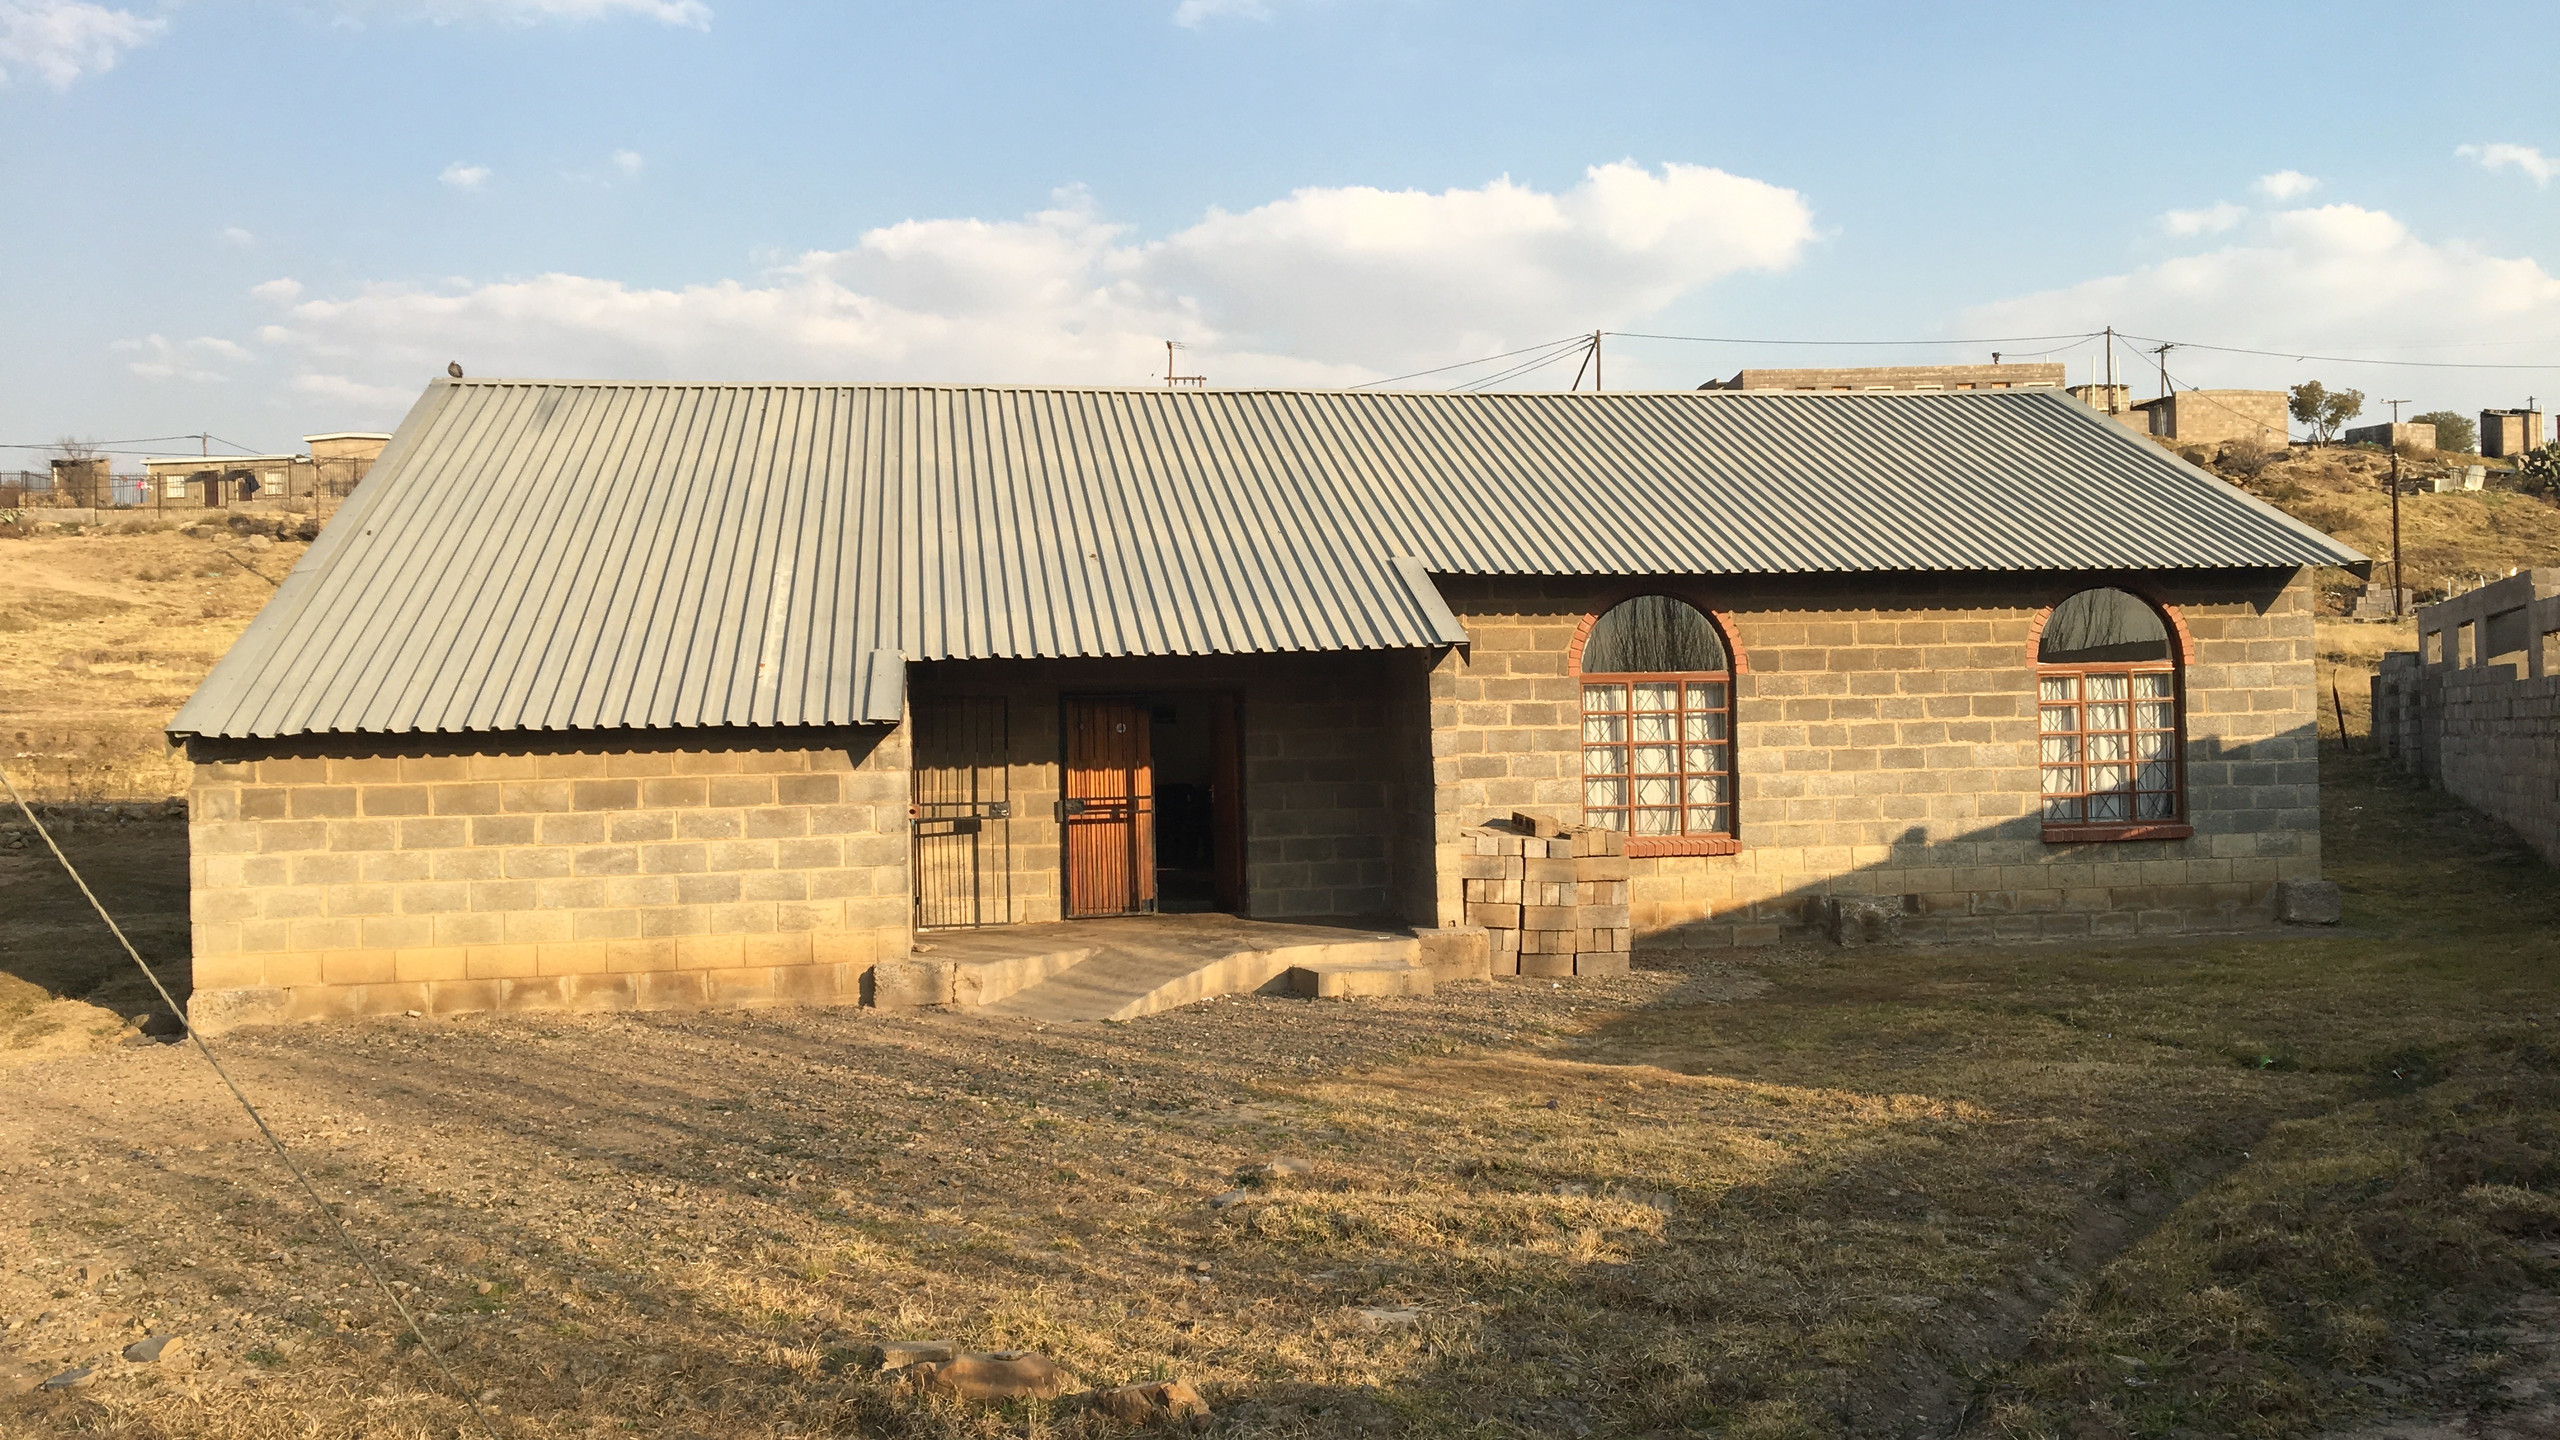 The church who hosted our Leadership Thrust in Thetsane, Lesotho.